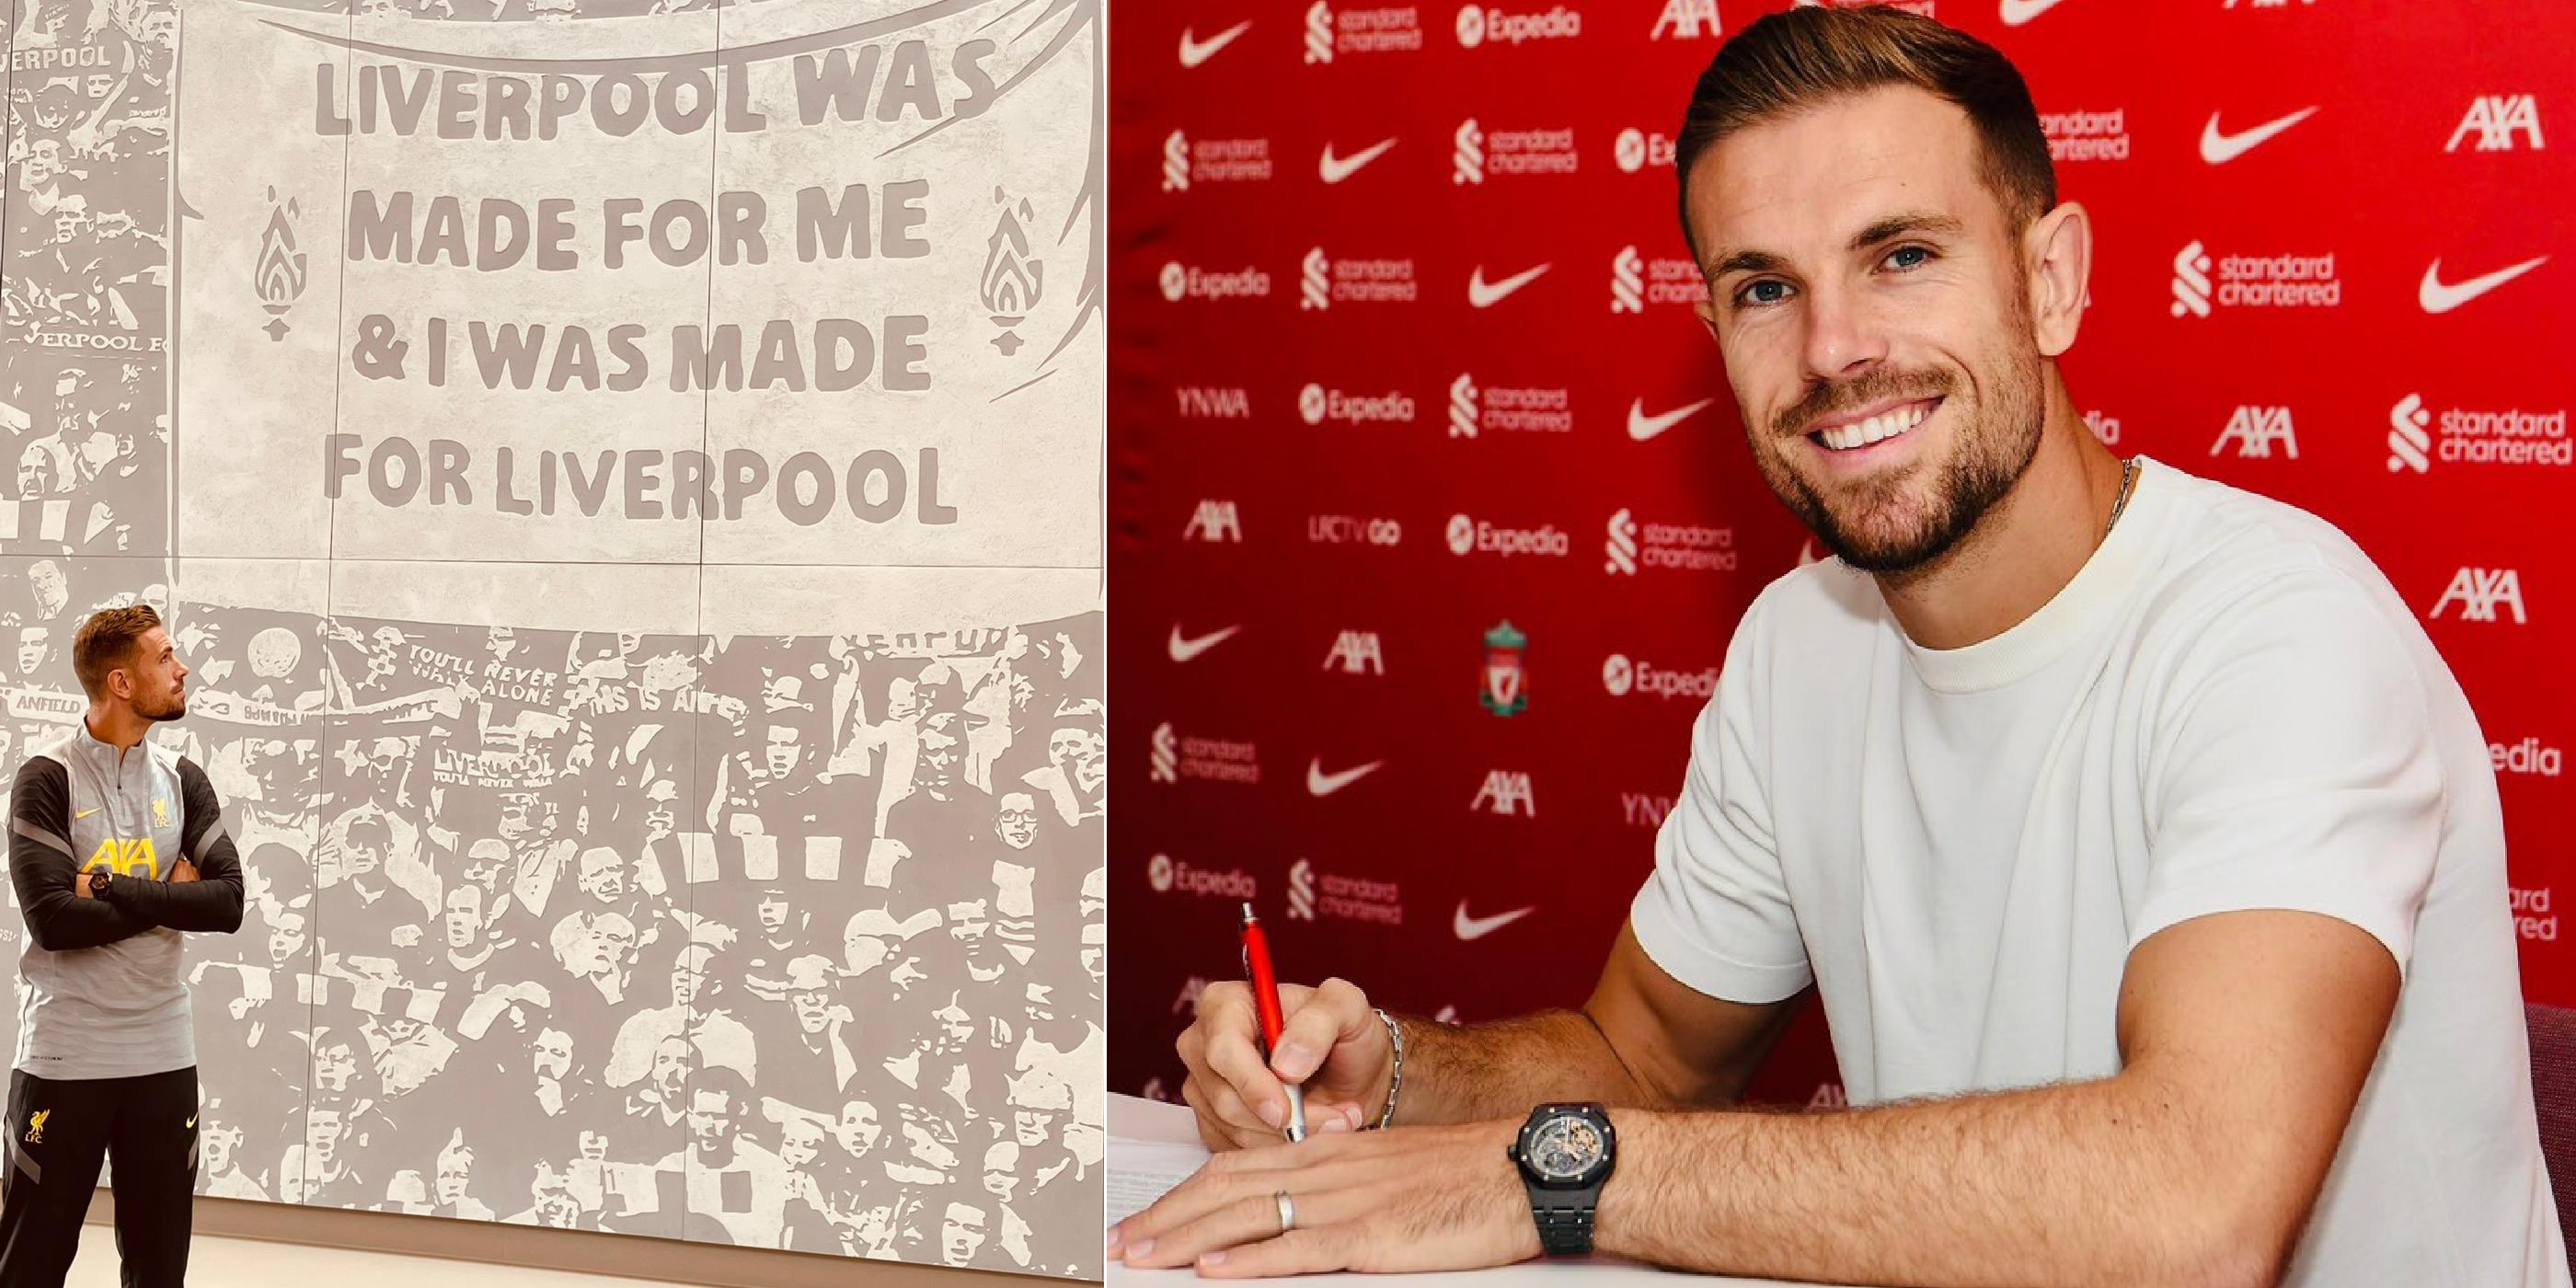 Henderson hits social media after signing long-term Liverpool contract: 'I'll continue to give absolutely everything'